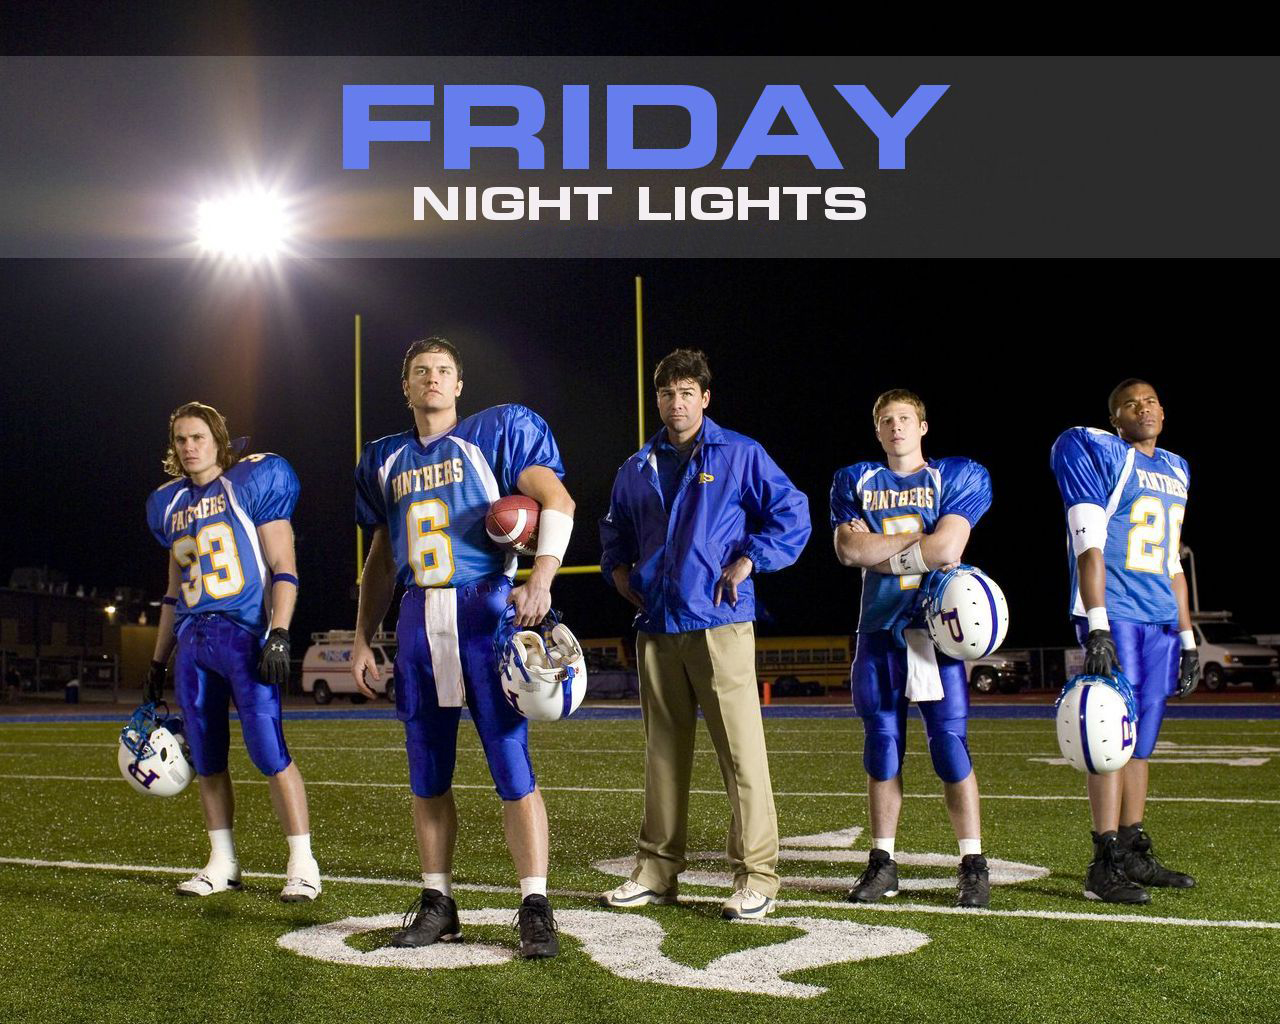 Friday Night Lights Billy Bob